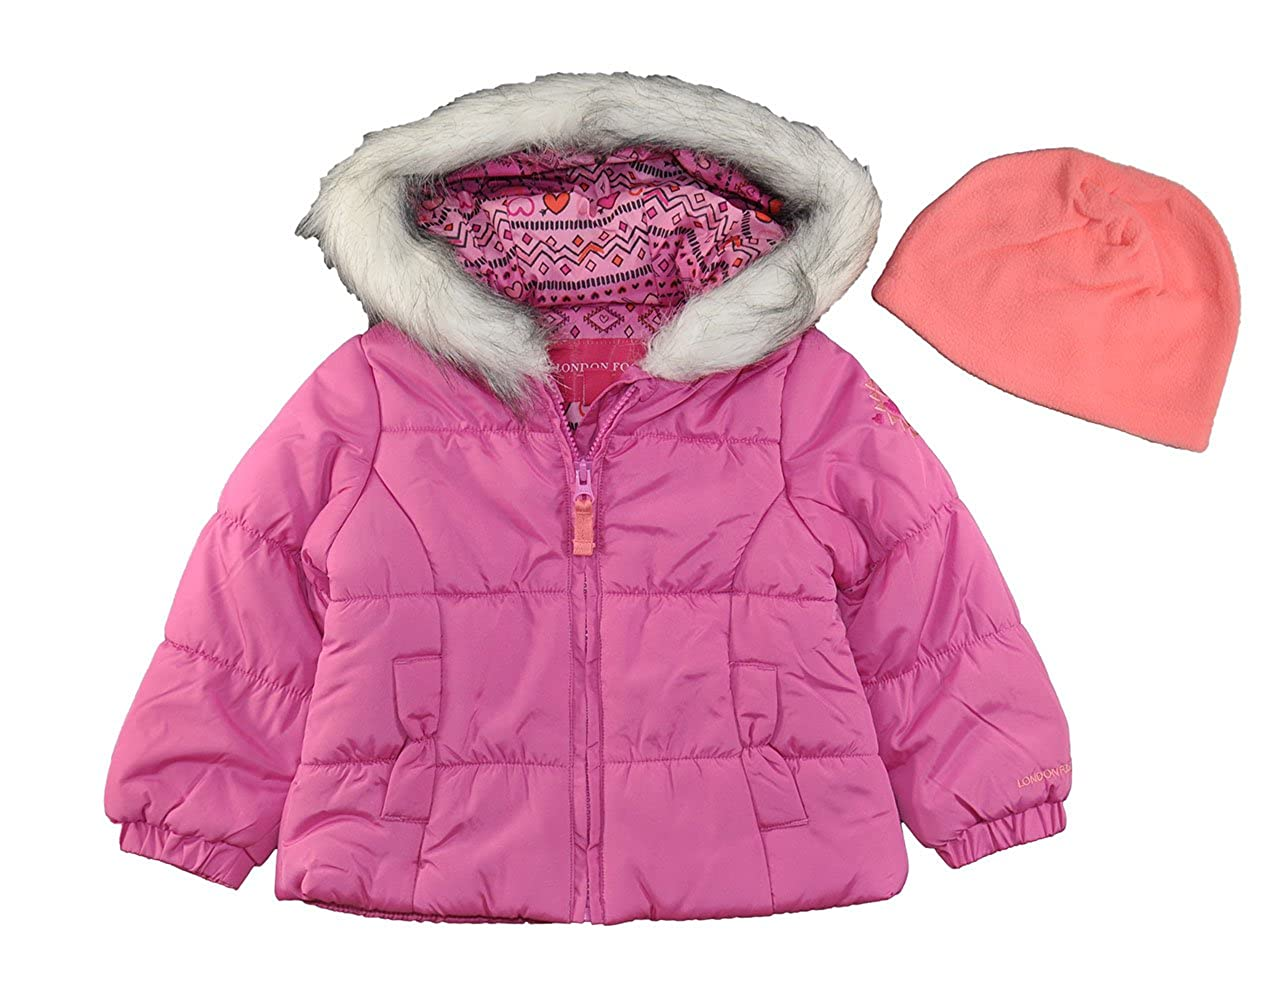 London Fog Coral Printed Puffer Jacket With Faux Fur Lined Hood L217527 Outerwear